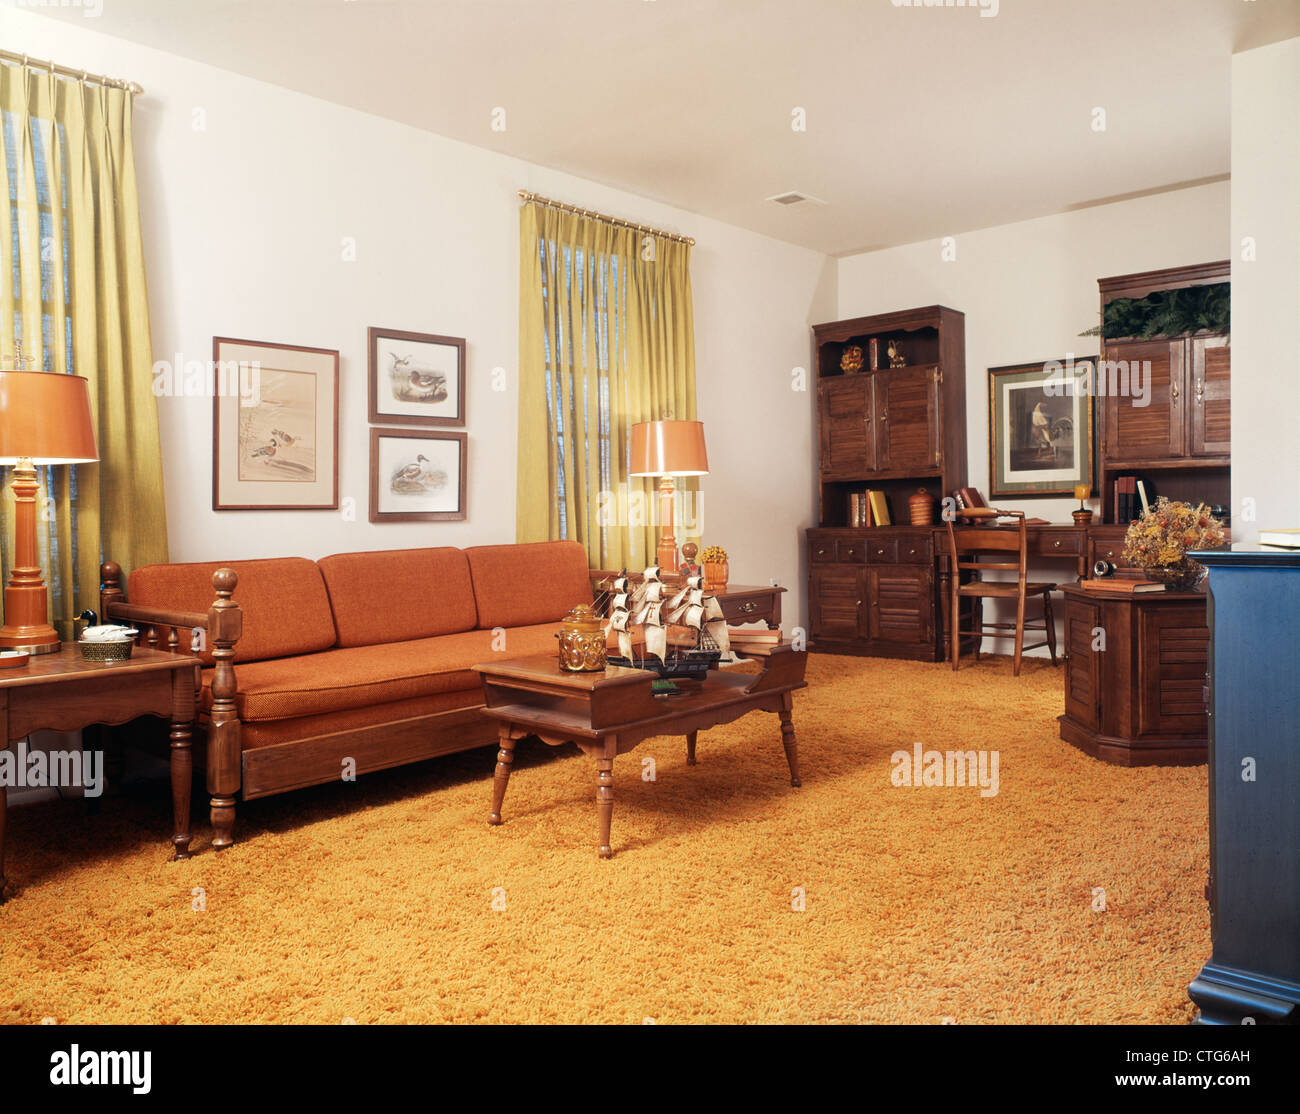 1970s LIVING ROOM WITH ORANGE COUCH SHAG RUG